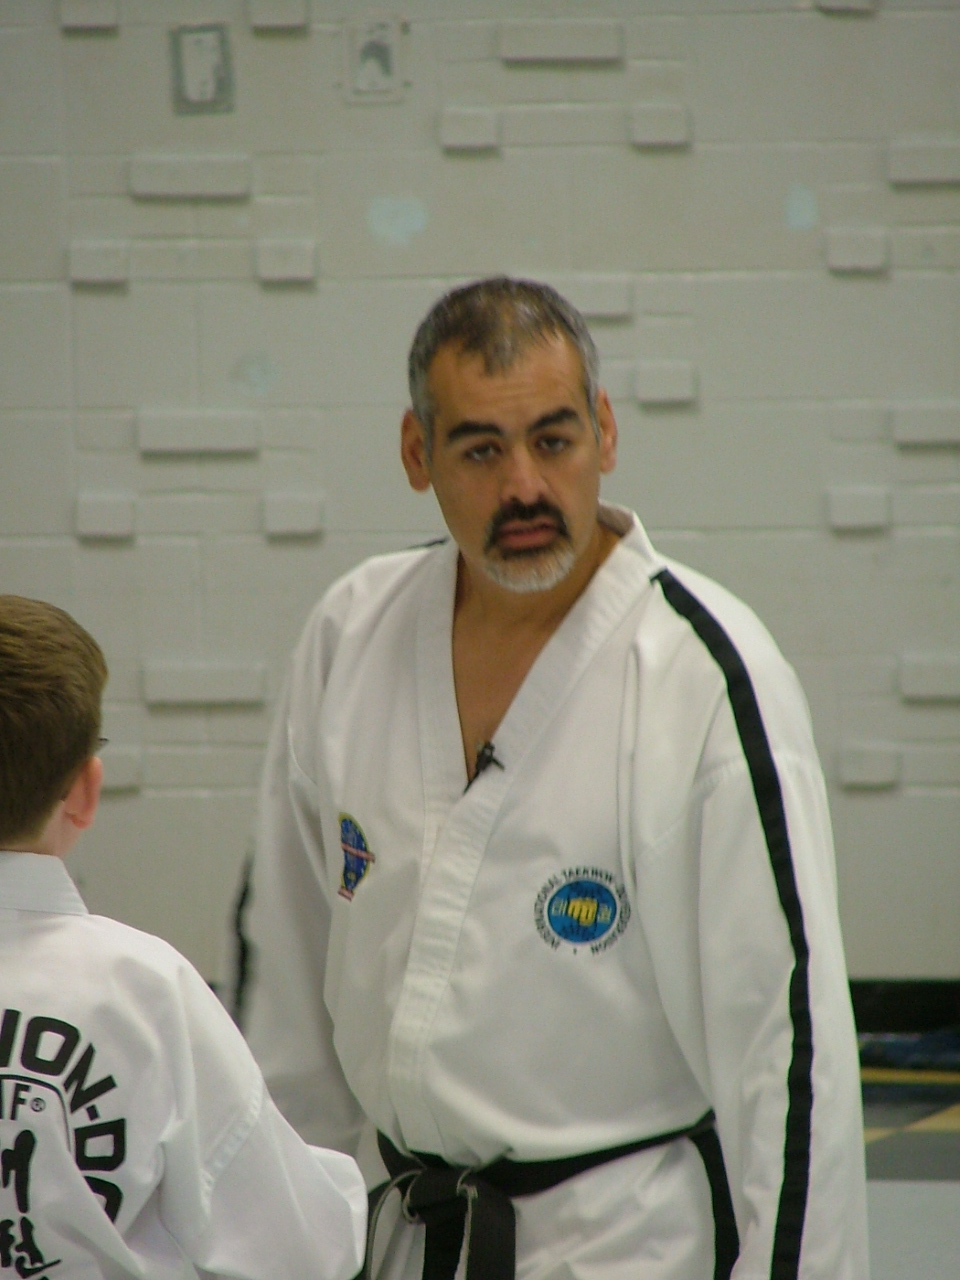 My instructor Master Nunez